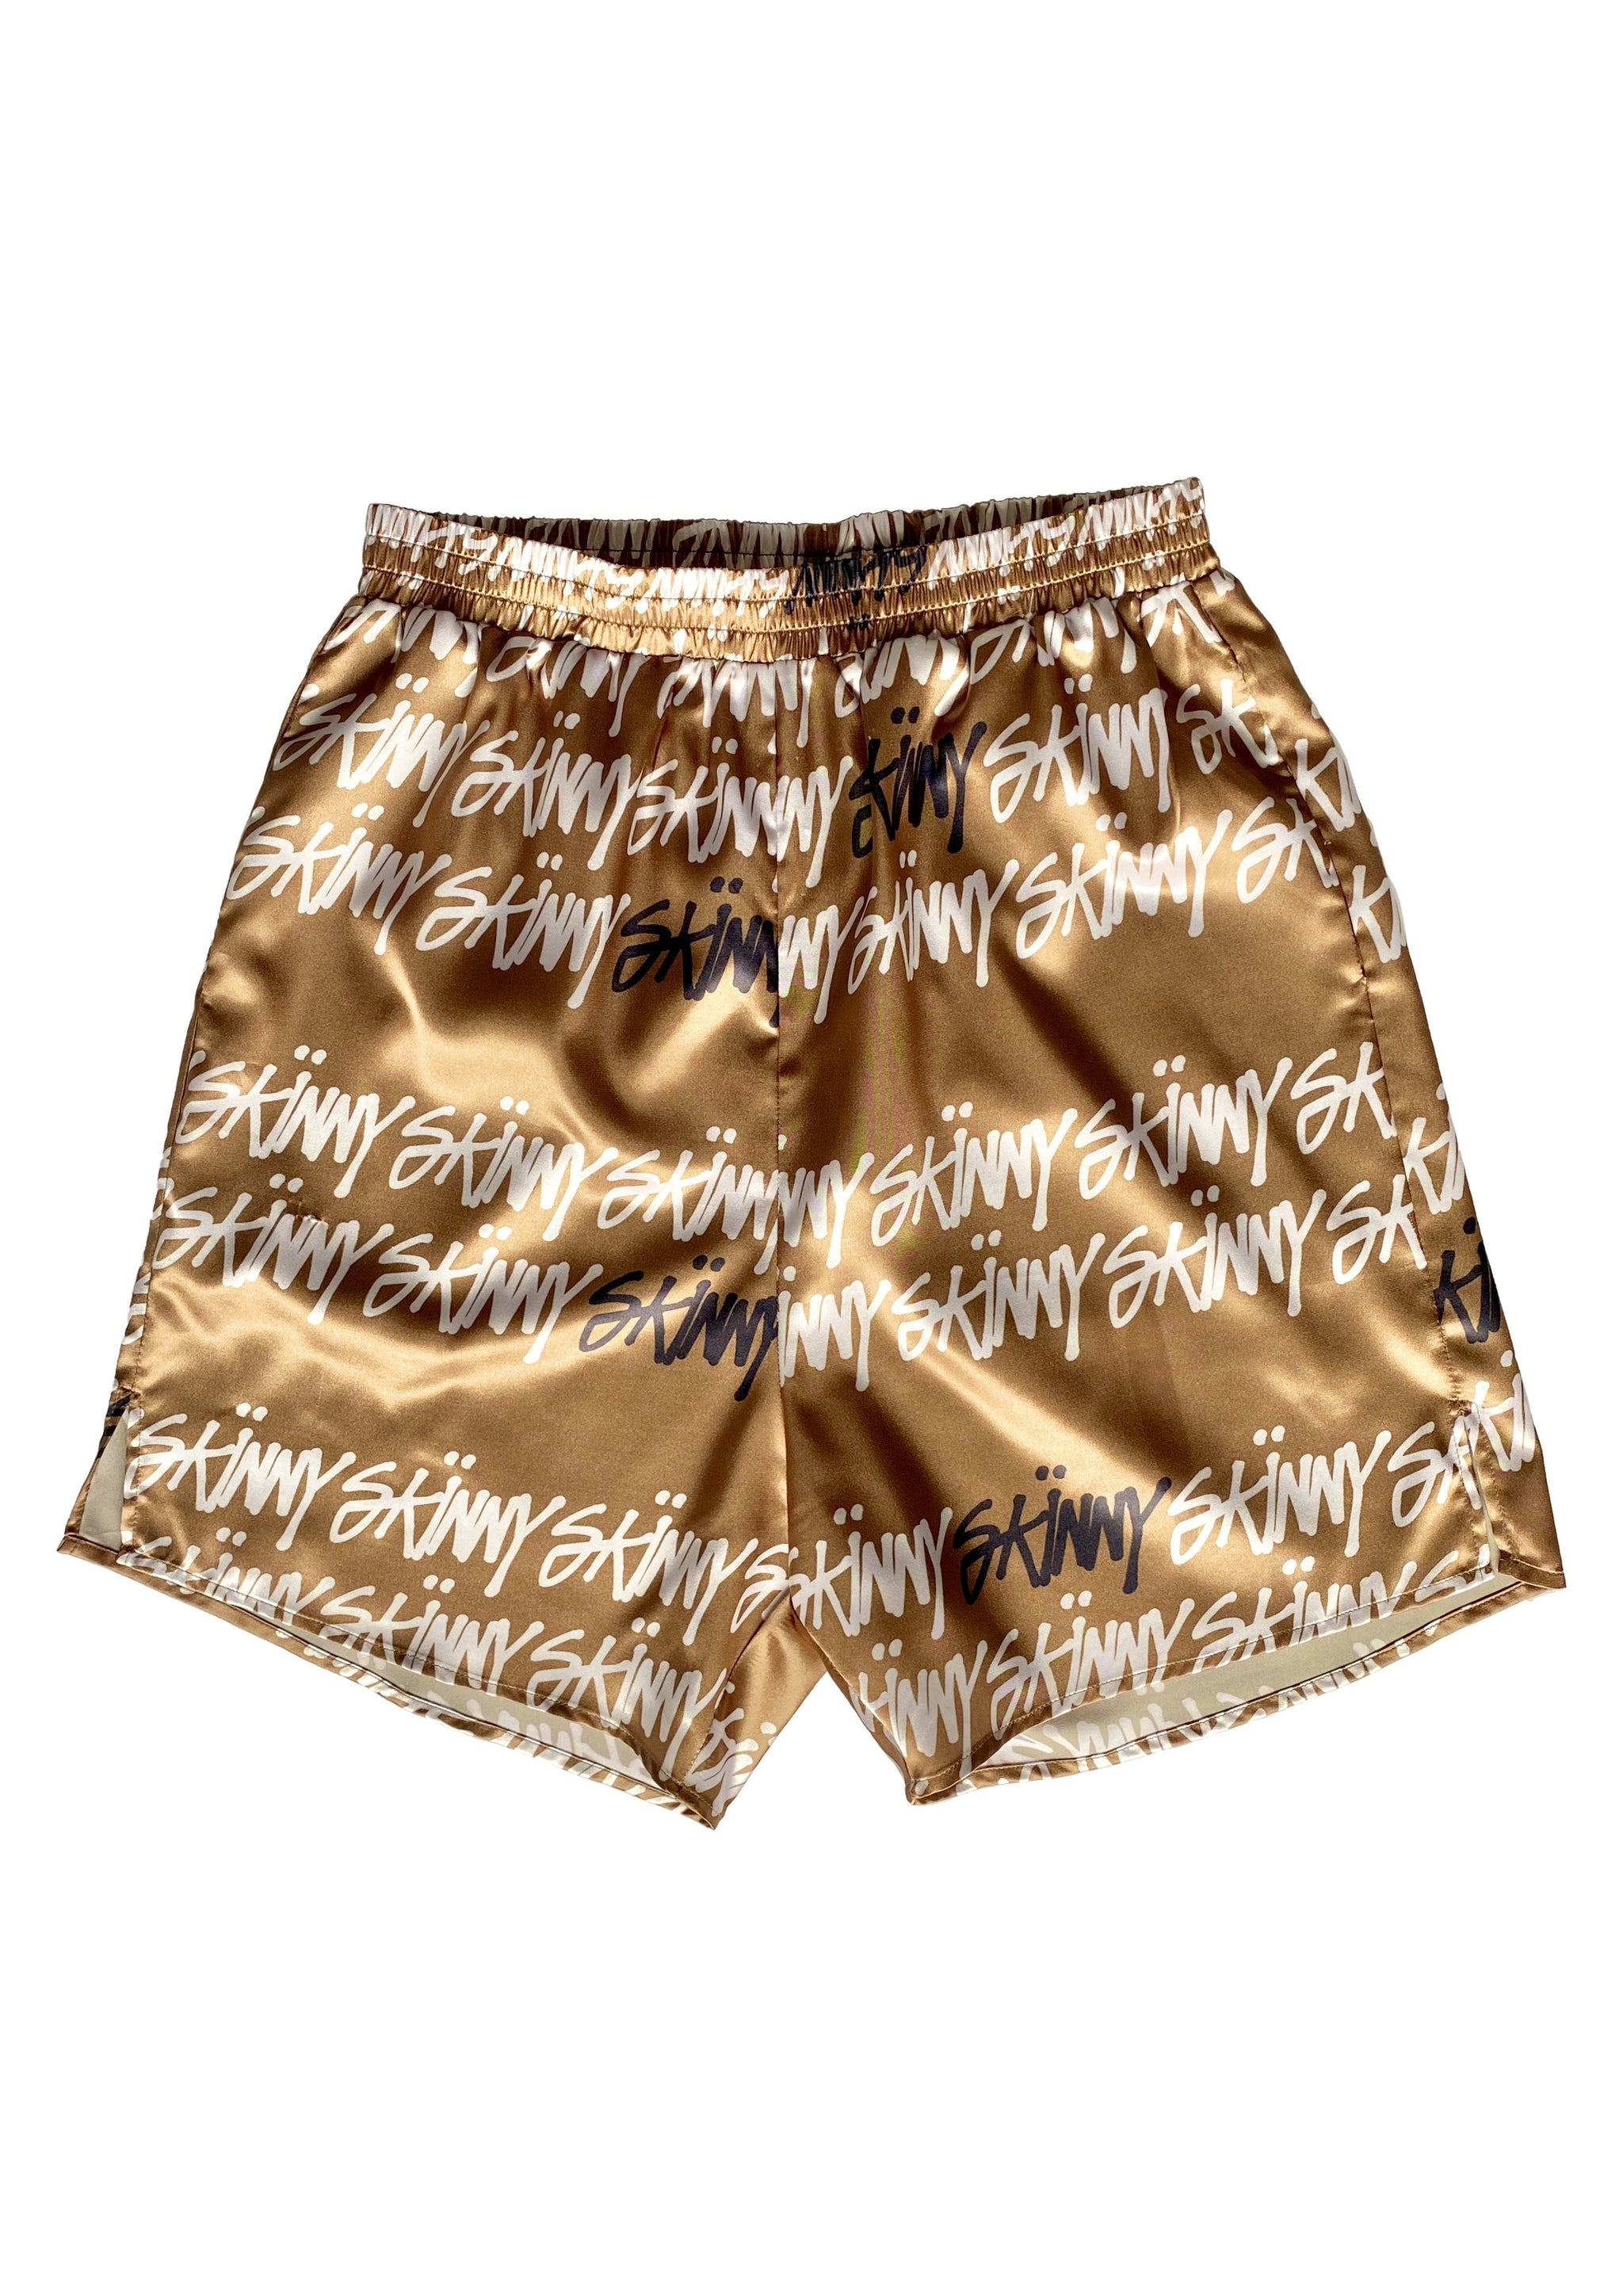 Skussy Shorts by The Skinnys (Unisex, elastic waistband, polyester blend, gold color, brass color)